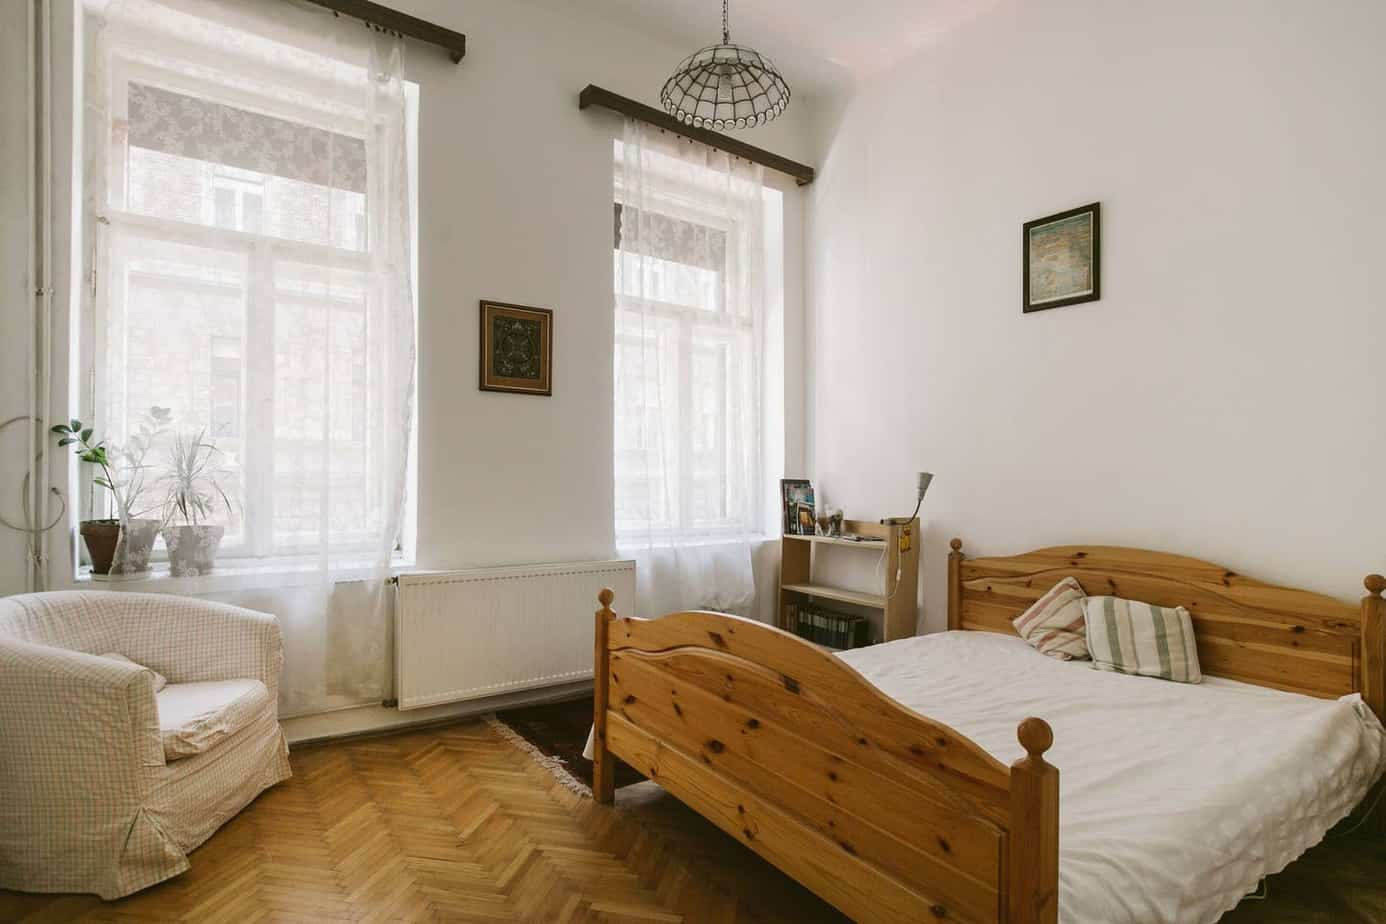 An airbnb in Budapest perfect for gluten free travelers.